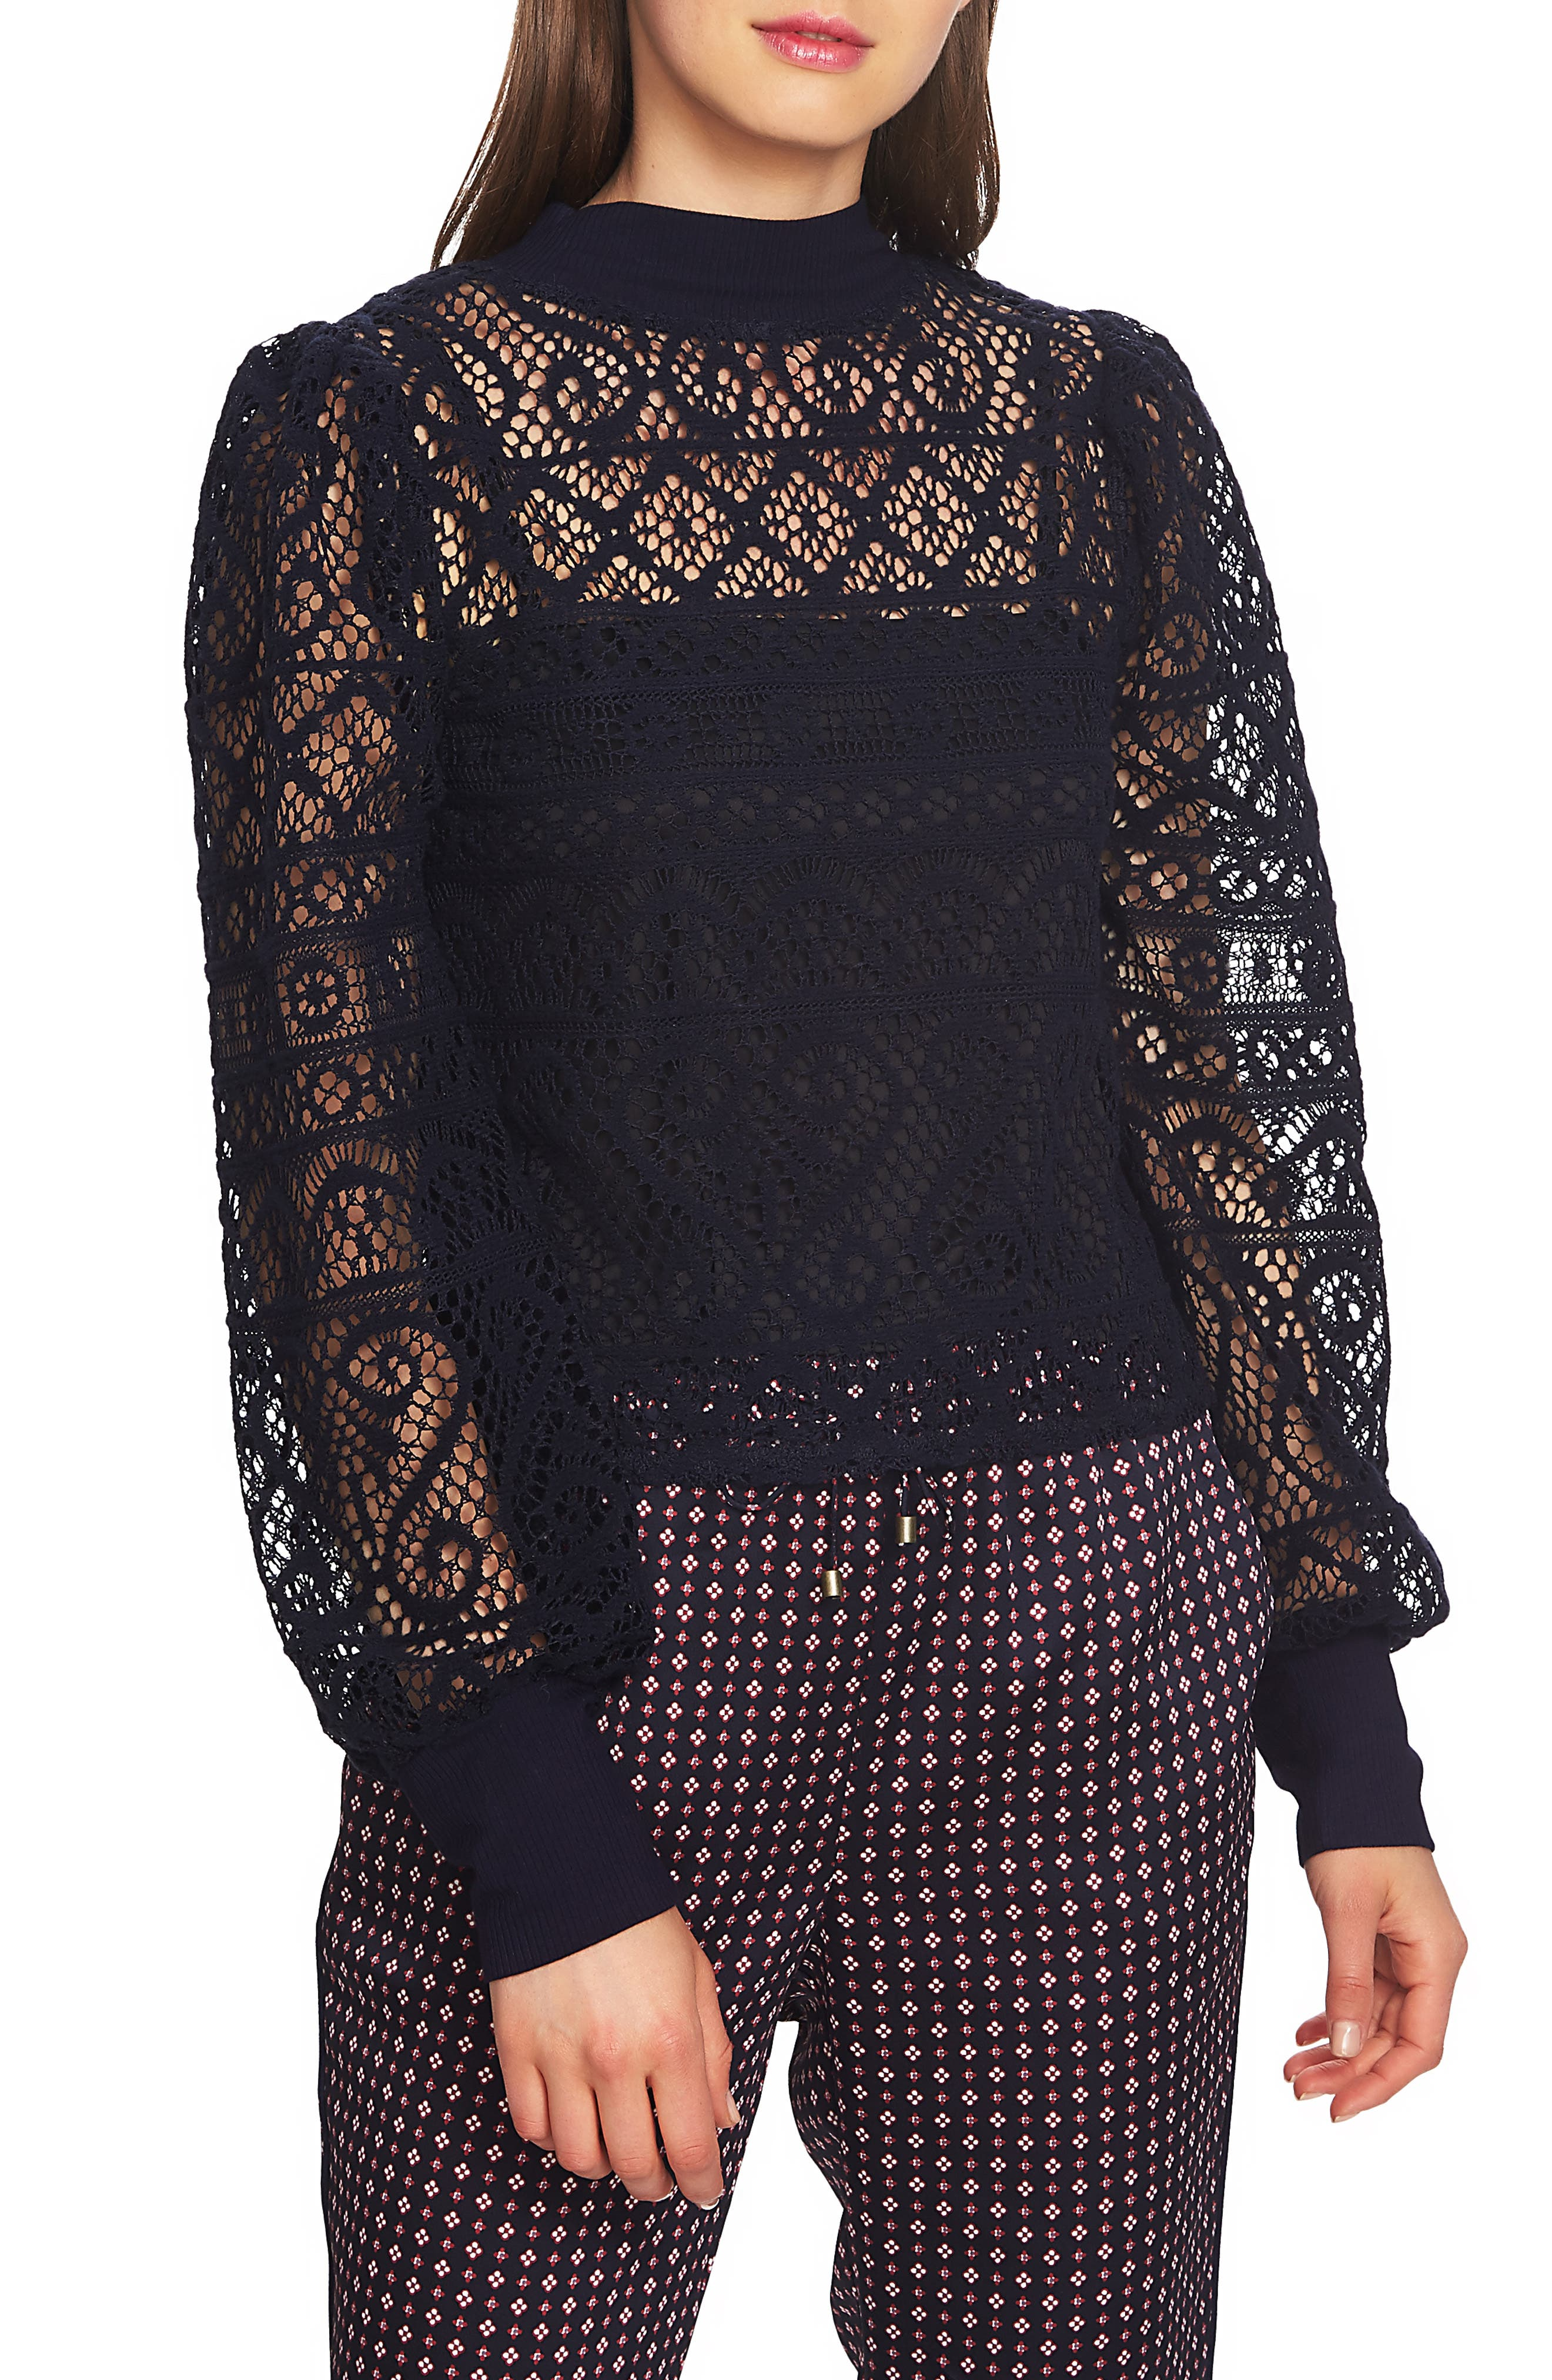 Steampunk Costume Essentials for Women Womens 1.state Lace Detail Crop Top Size X-Large - Blue $53.40 AT vintagedancer.com